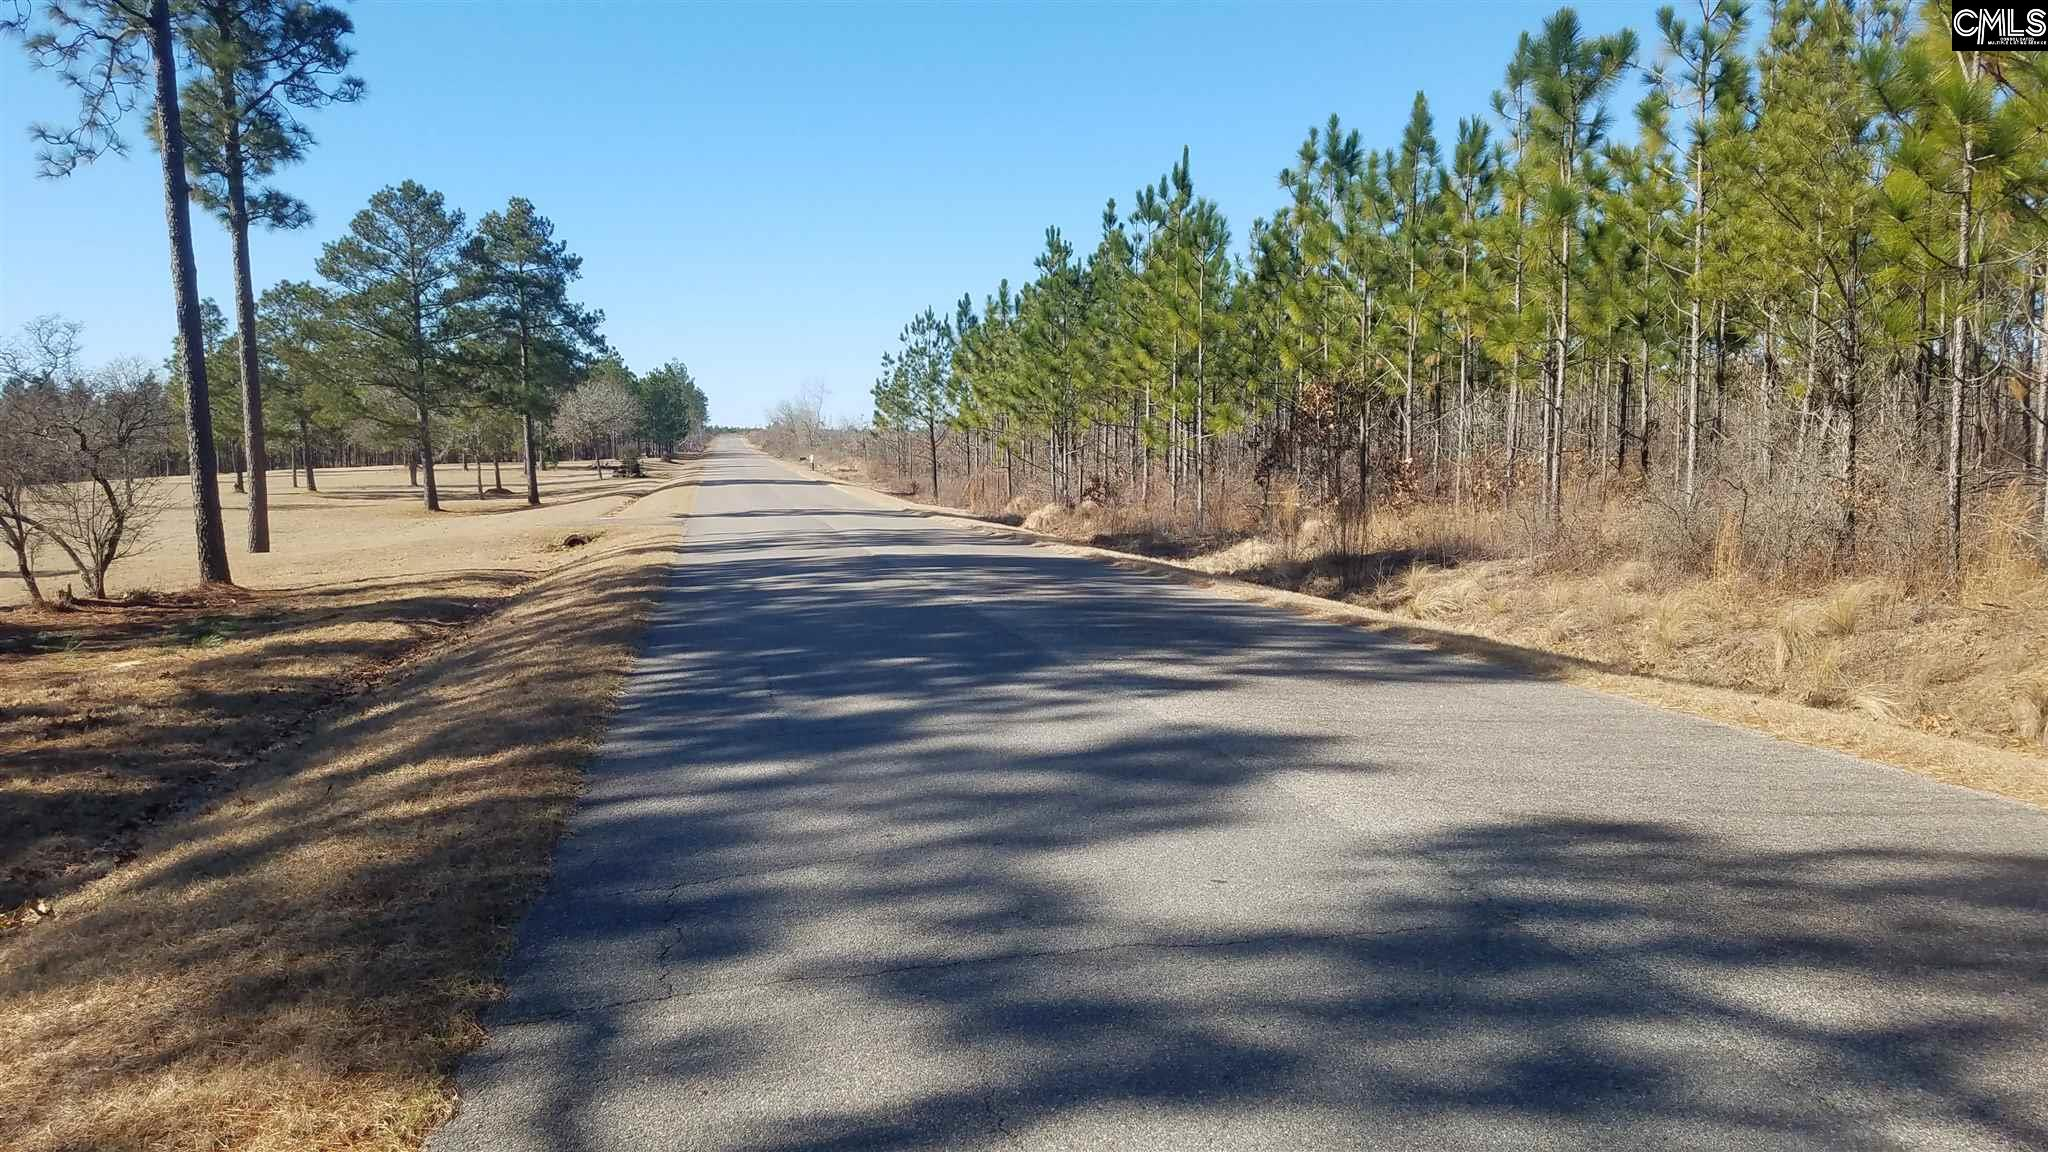 Old Chalk Bed Road Other, SC 29006